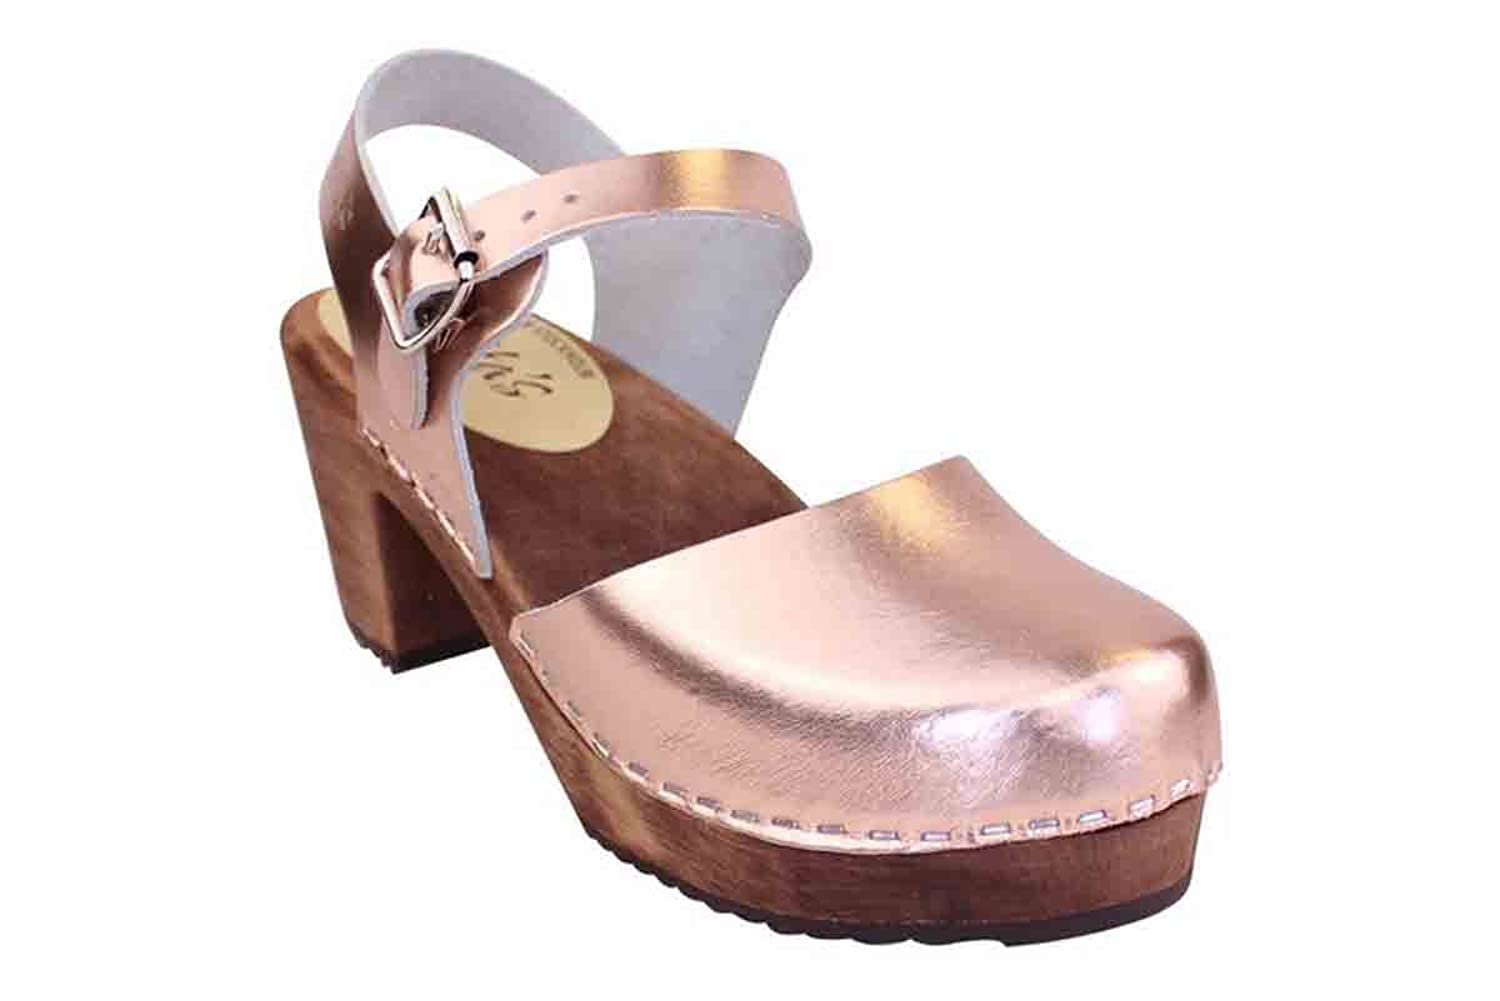 Lotta From Stockholm Swedish Clogs Highwood In Rose Gold With Brown Sole